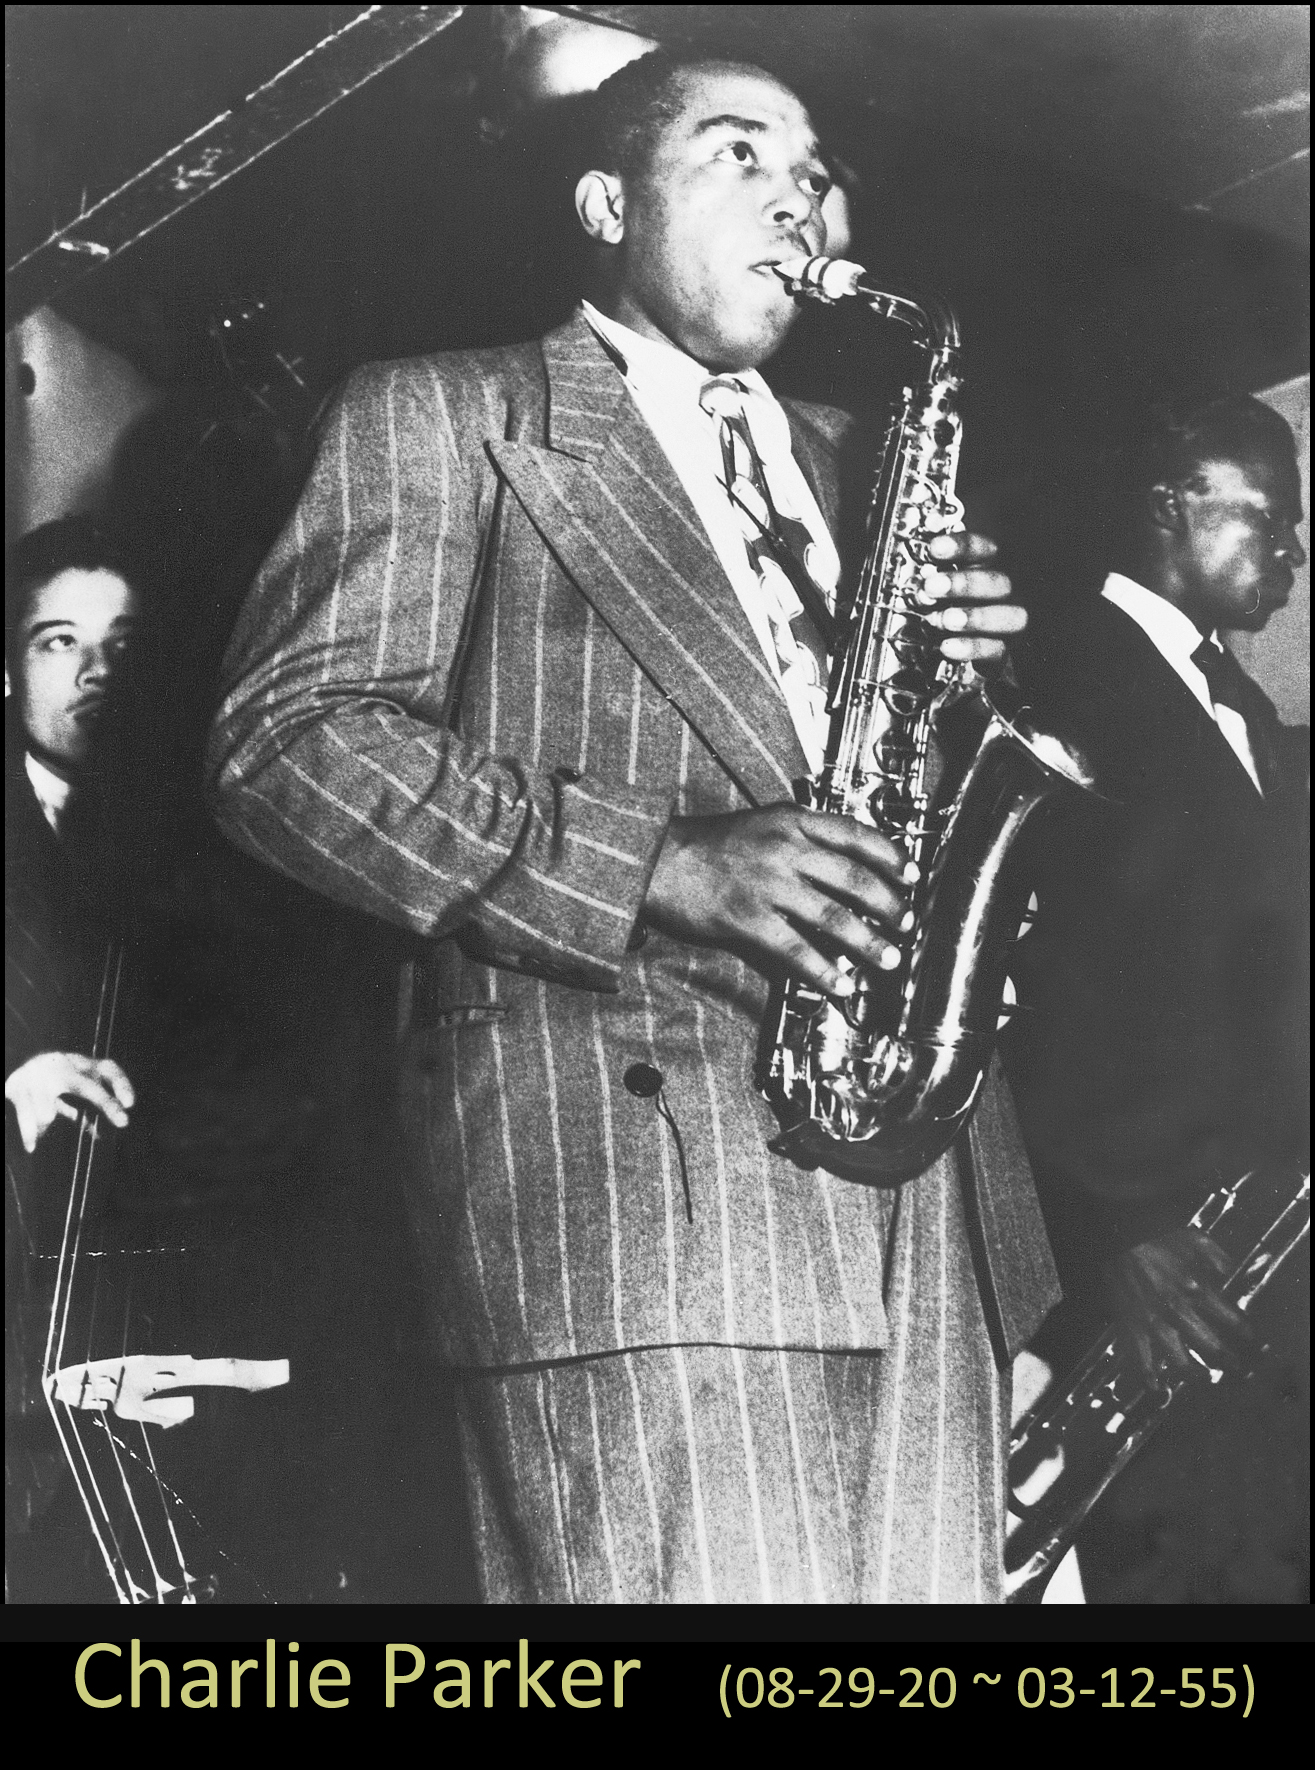 The Sax Players - Charlie Parker